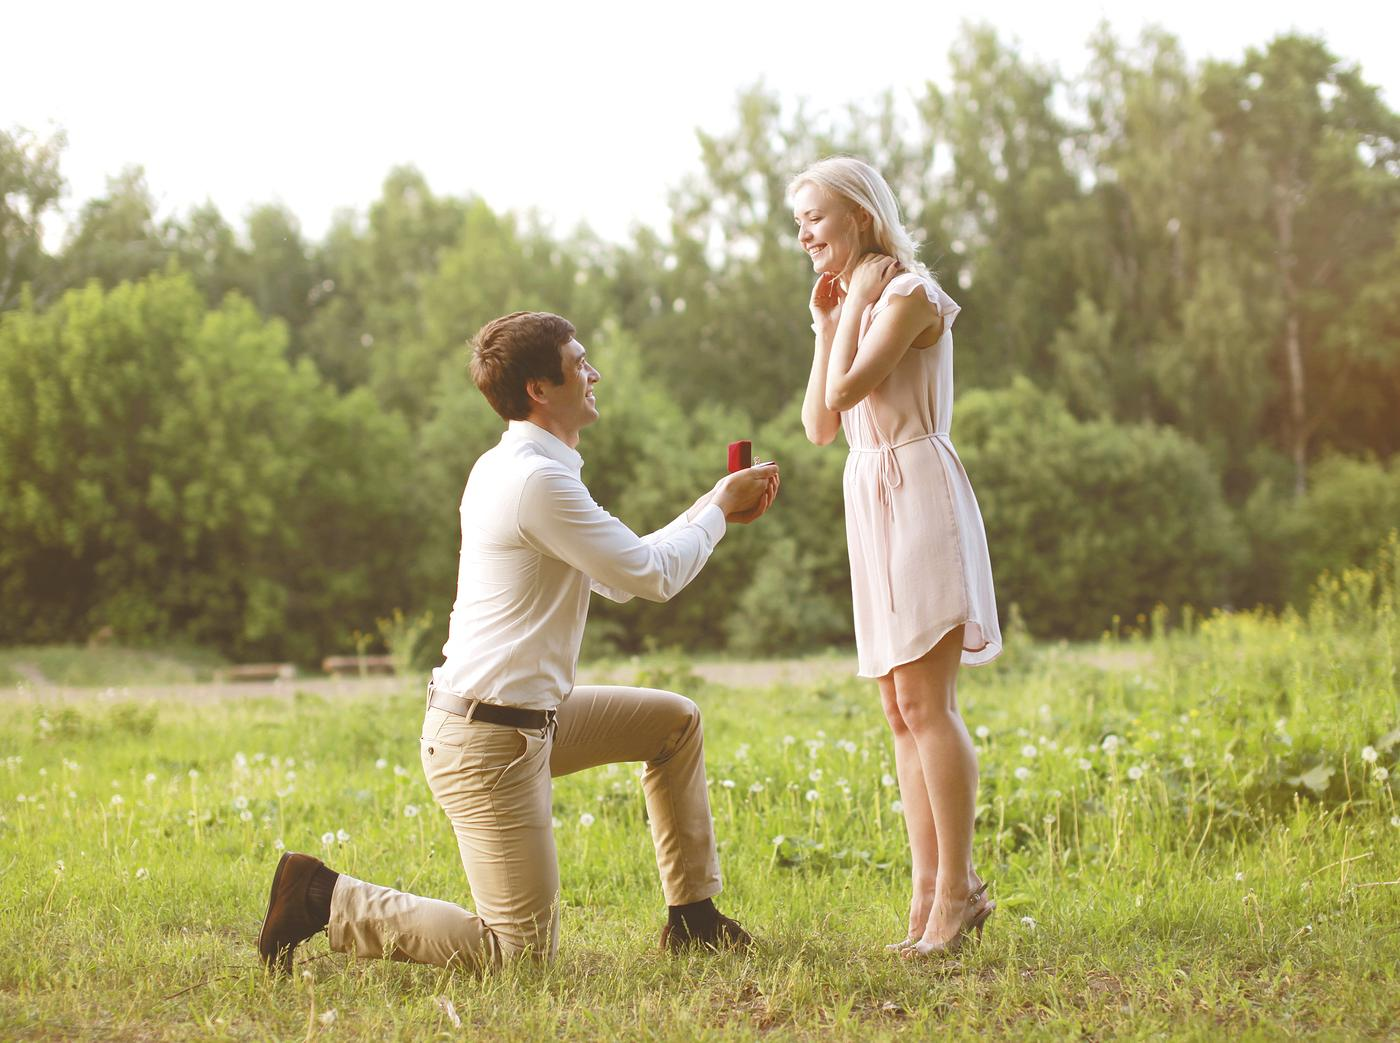 Are you ready to get married? Take this quiz and find out